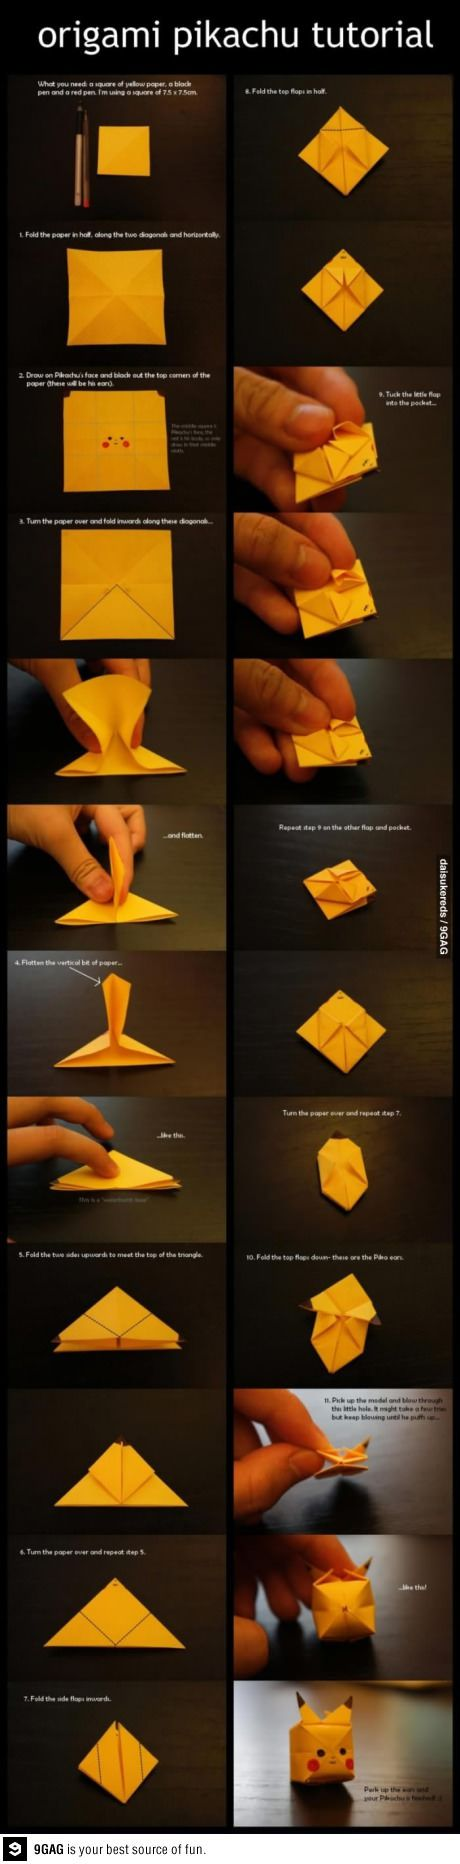 Pikachu Origami~ just went through my pinterest looking at what I posted, relised I hadn't changed the text on this one. I DONT have a son